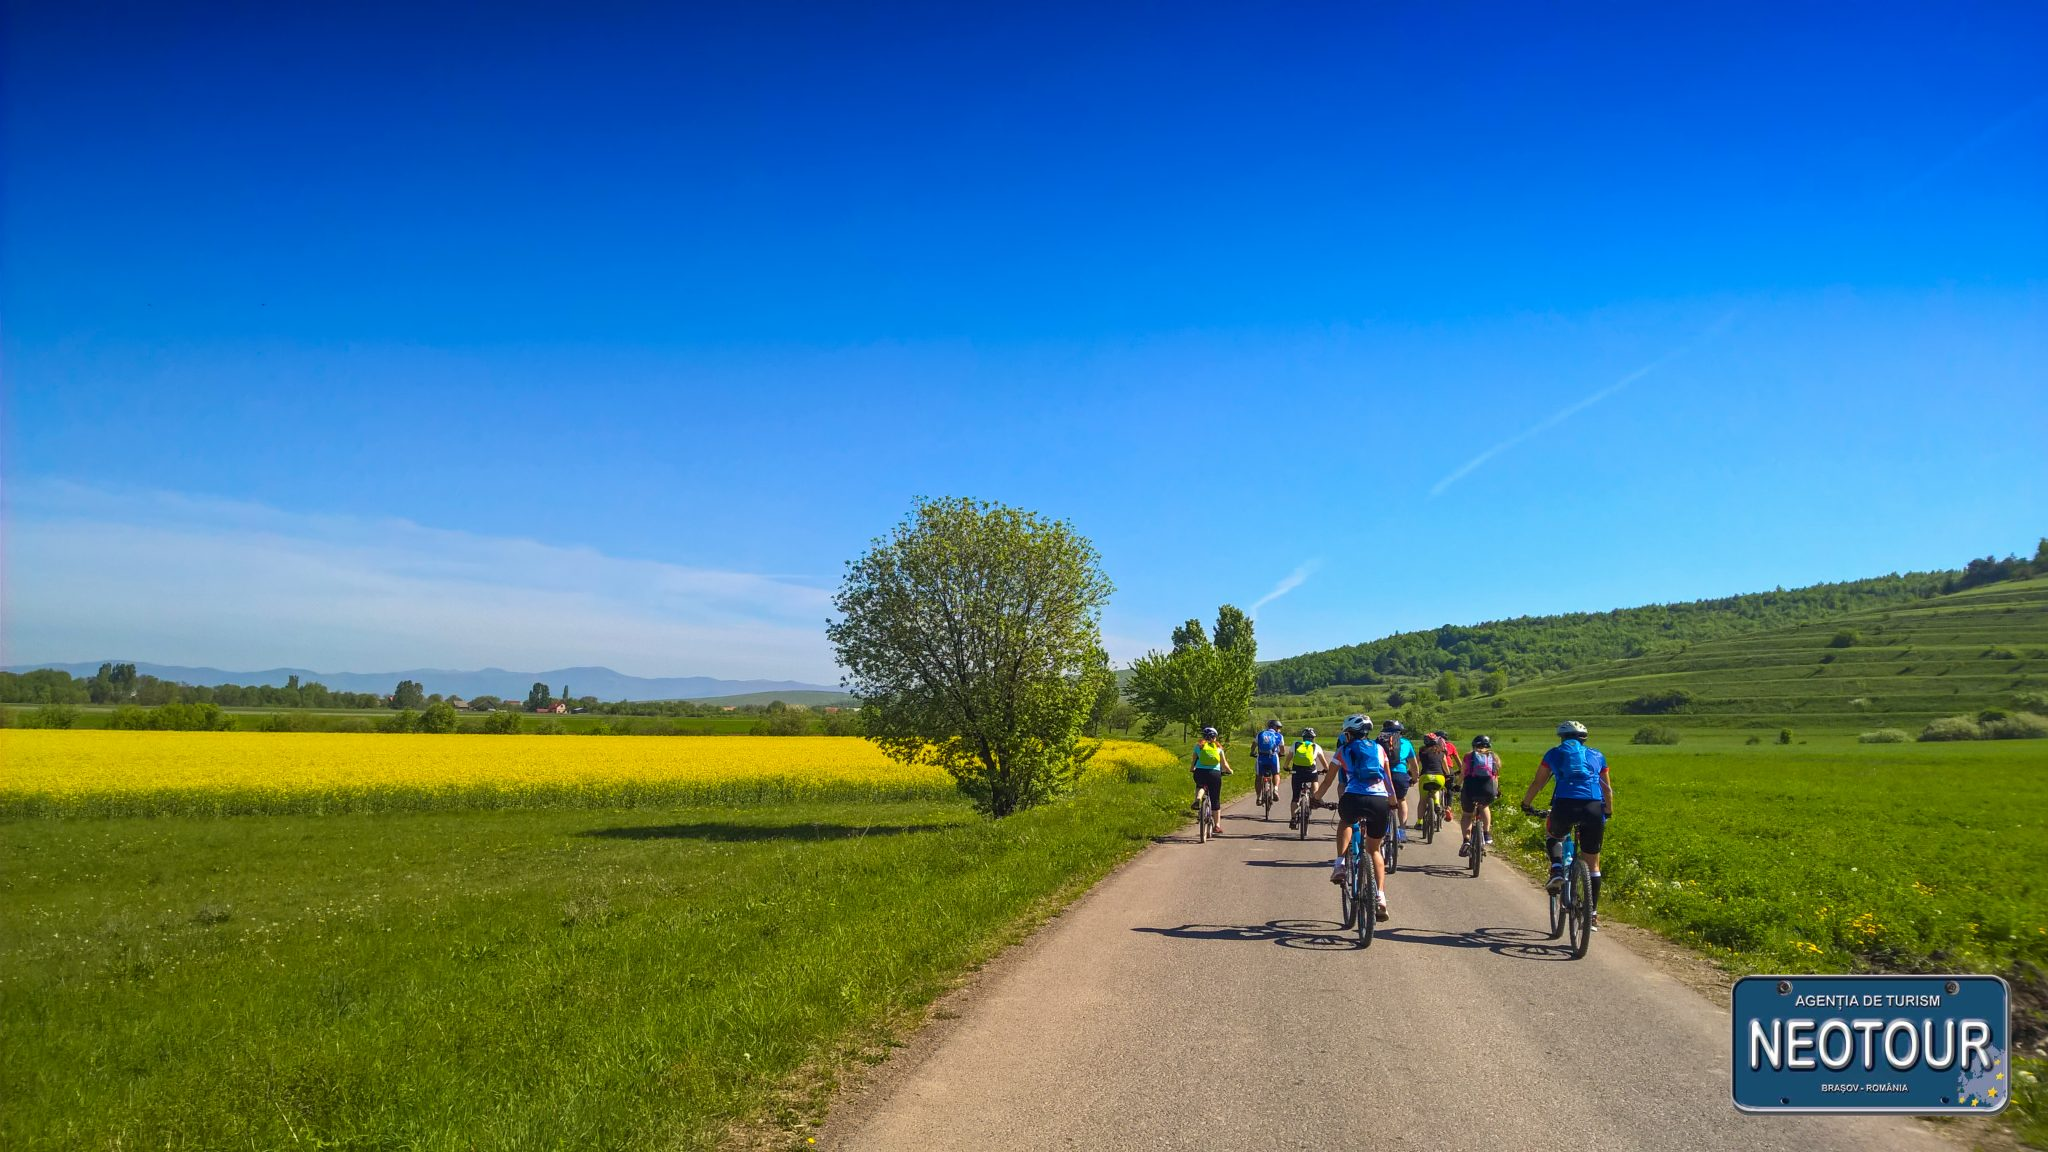 Bicycle tour in Covasna county